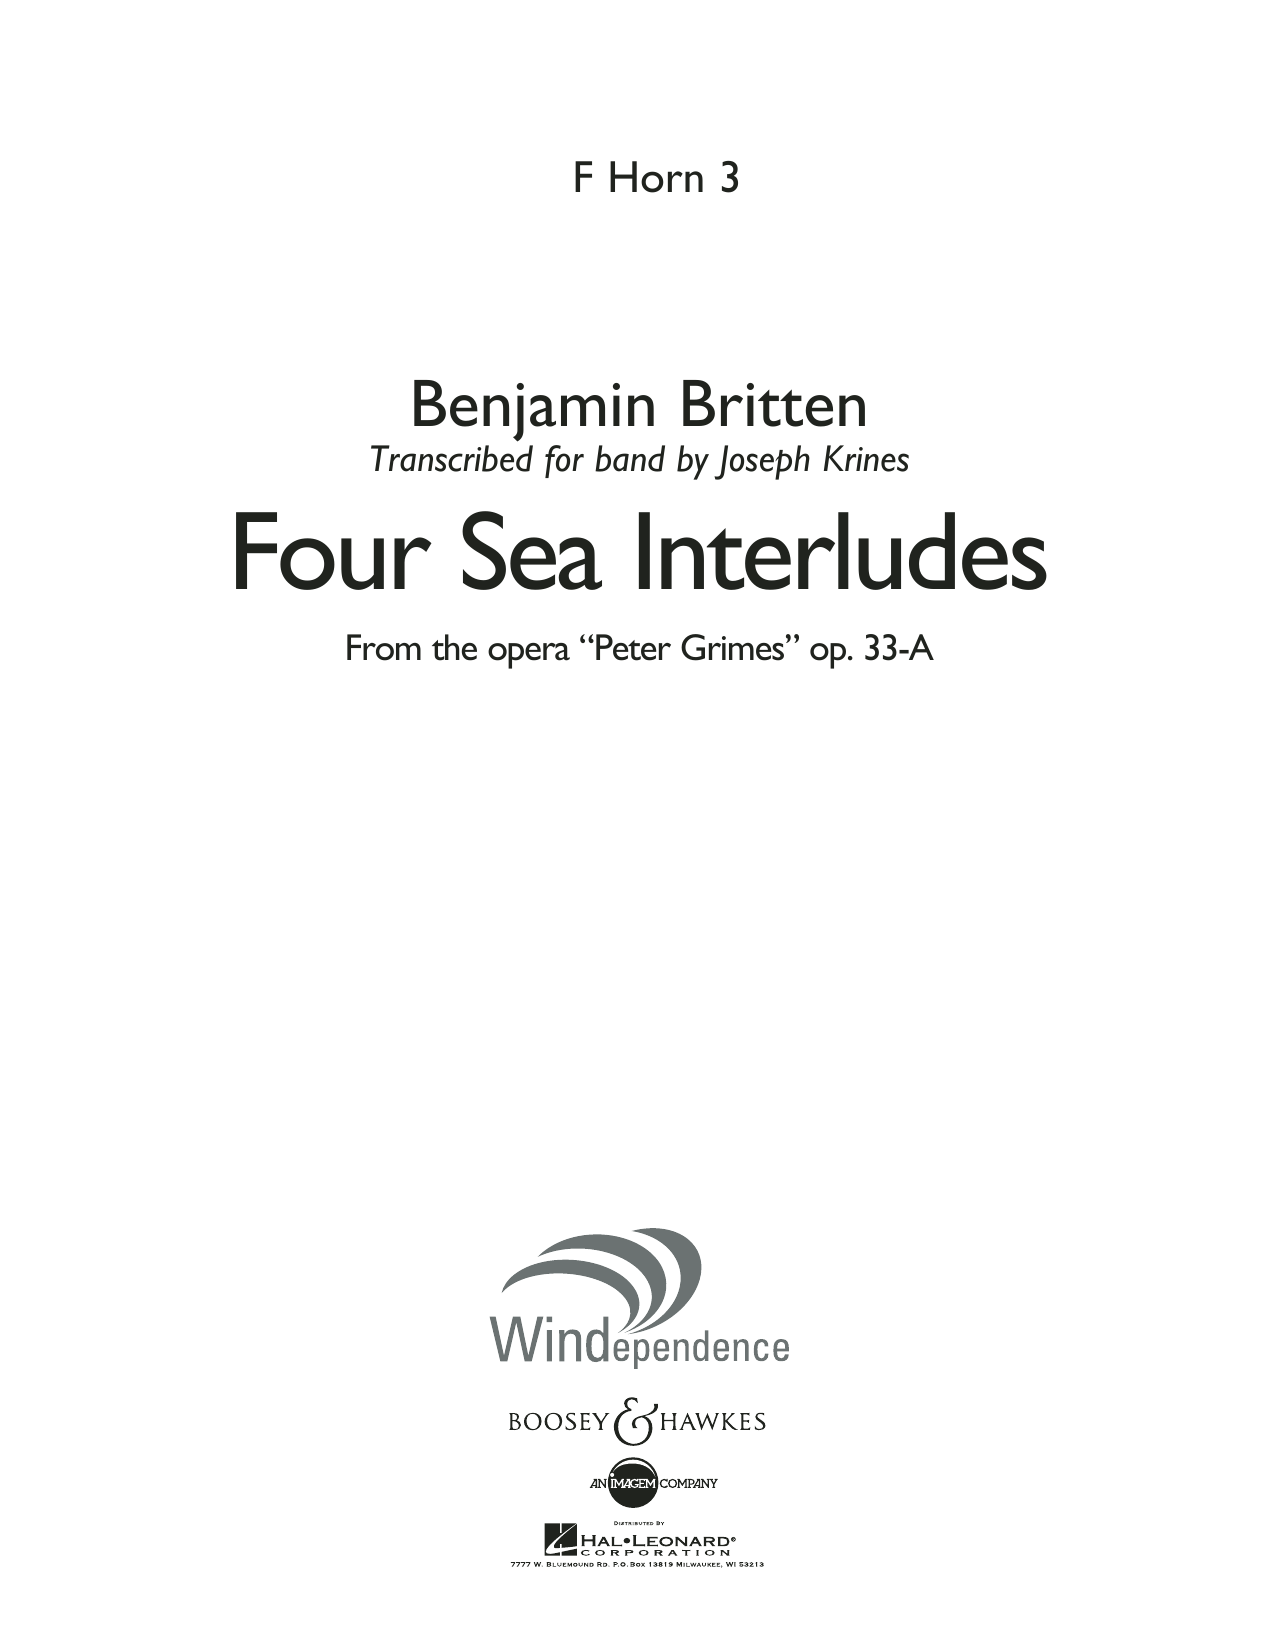 """Four Sea Interludes (from the opera """"Peter Grimes"""") - F Horn 3 (Concert Band)"""